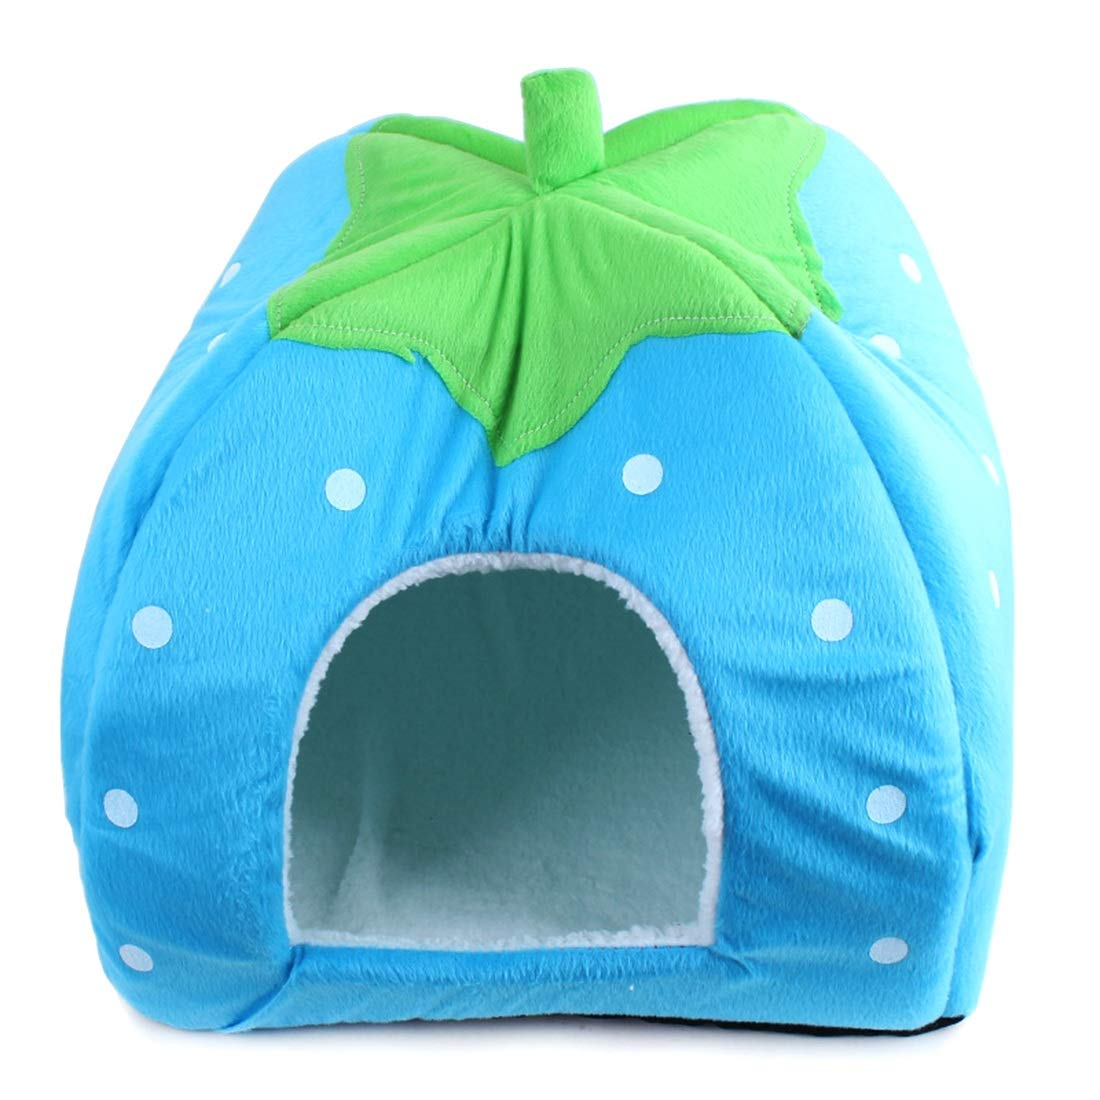 bluee Soft and Comfortable Foldable Pet Bed Strawberry Animal cave nest Cute pet cat Dog House 4 colors to Choose from (color   bluee)